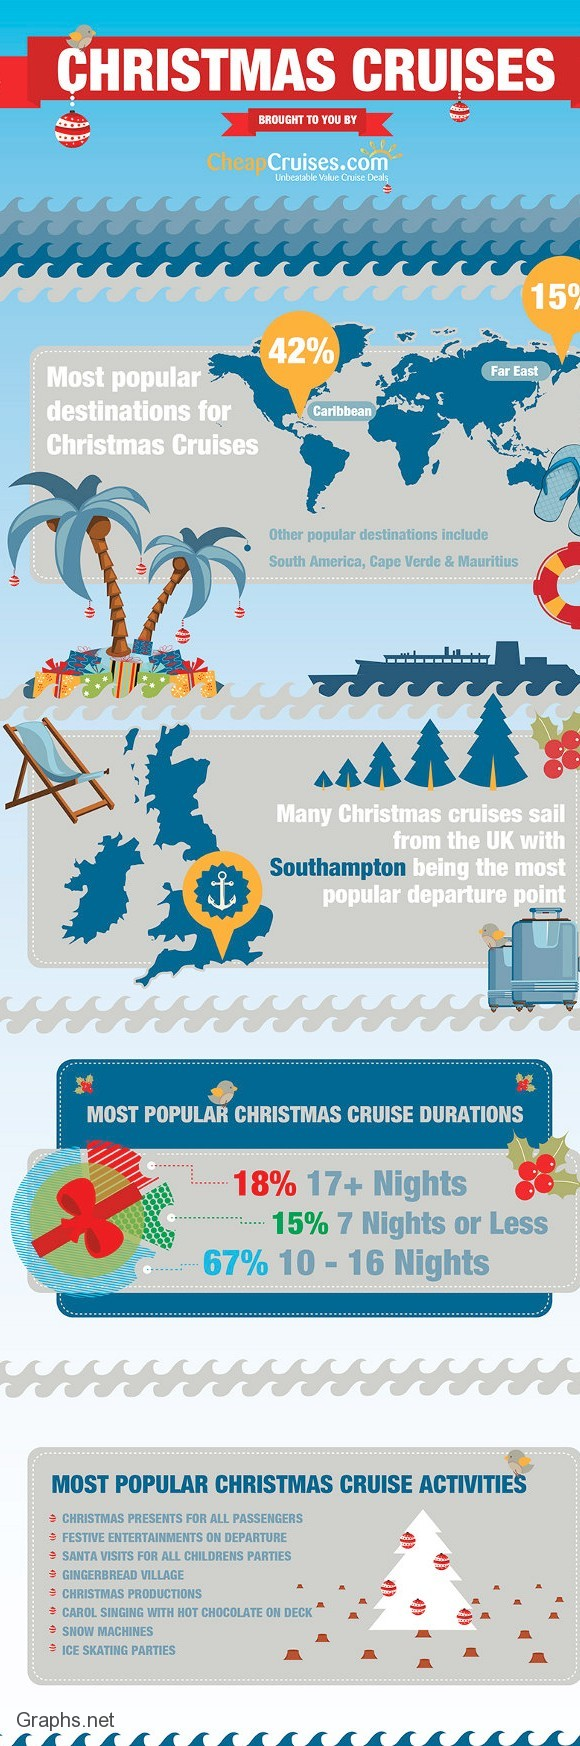 Top Destinations For Christmas Cruises